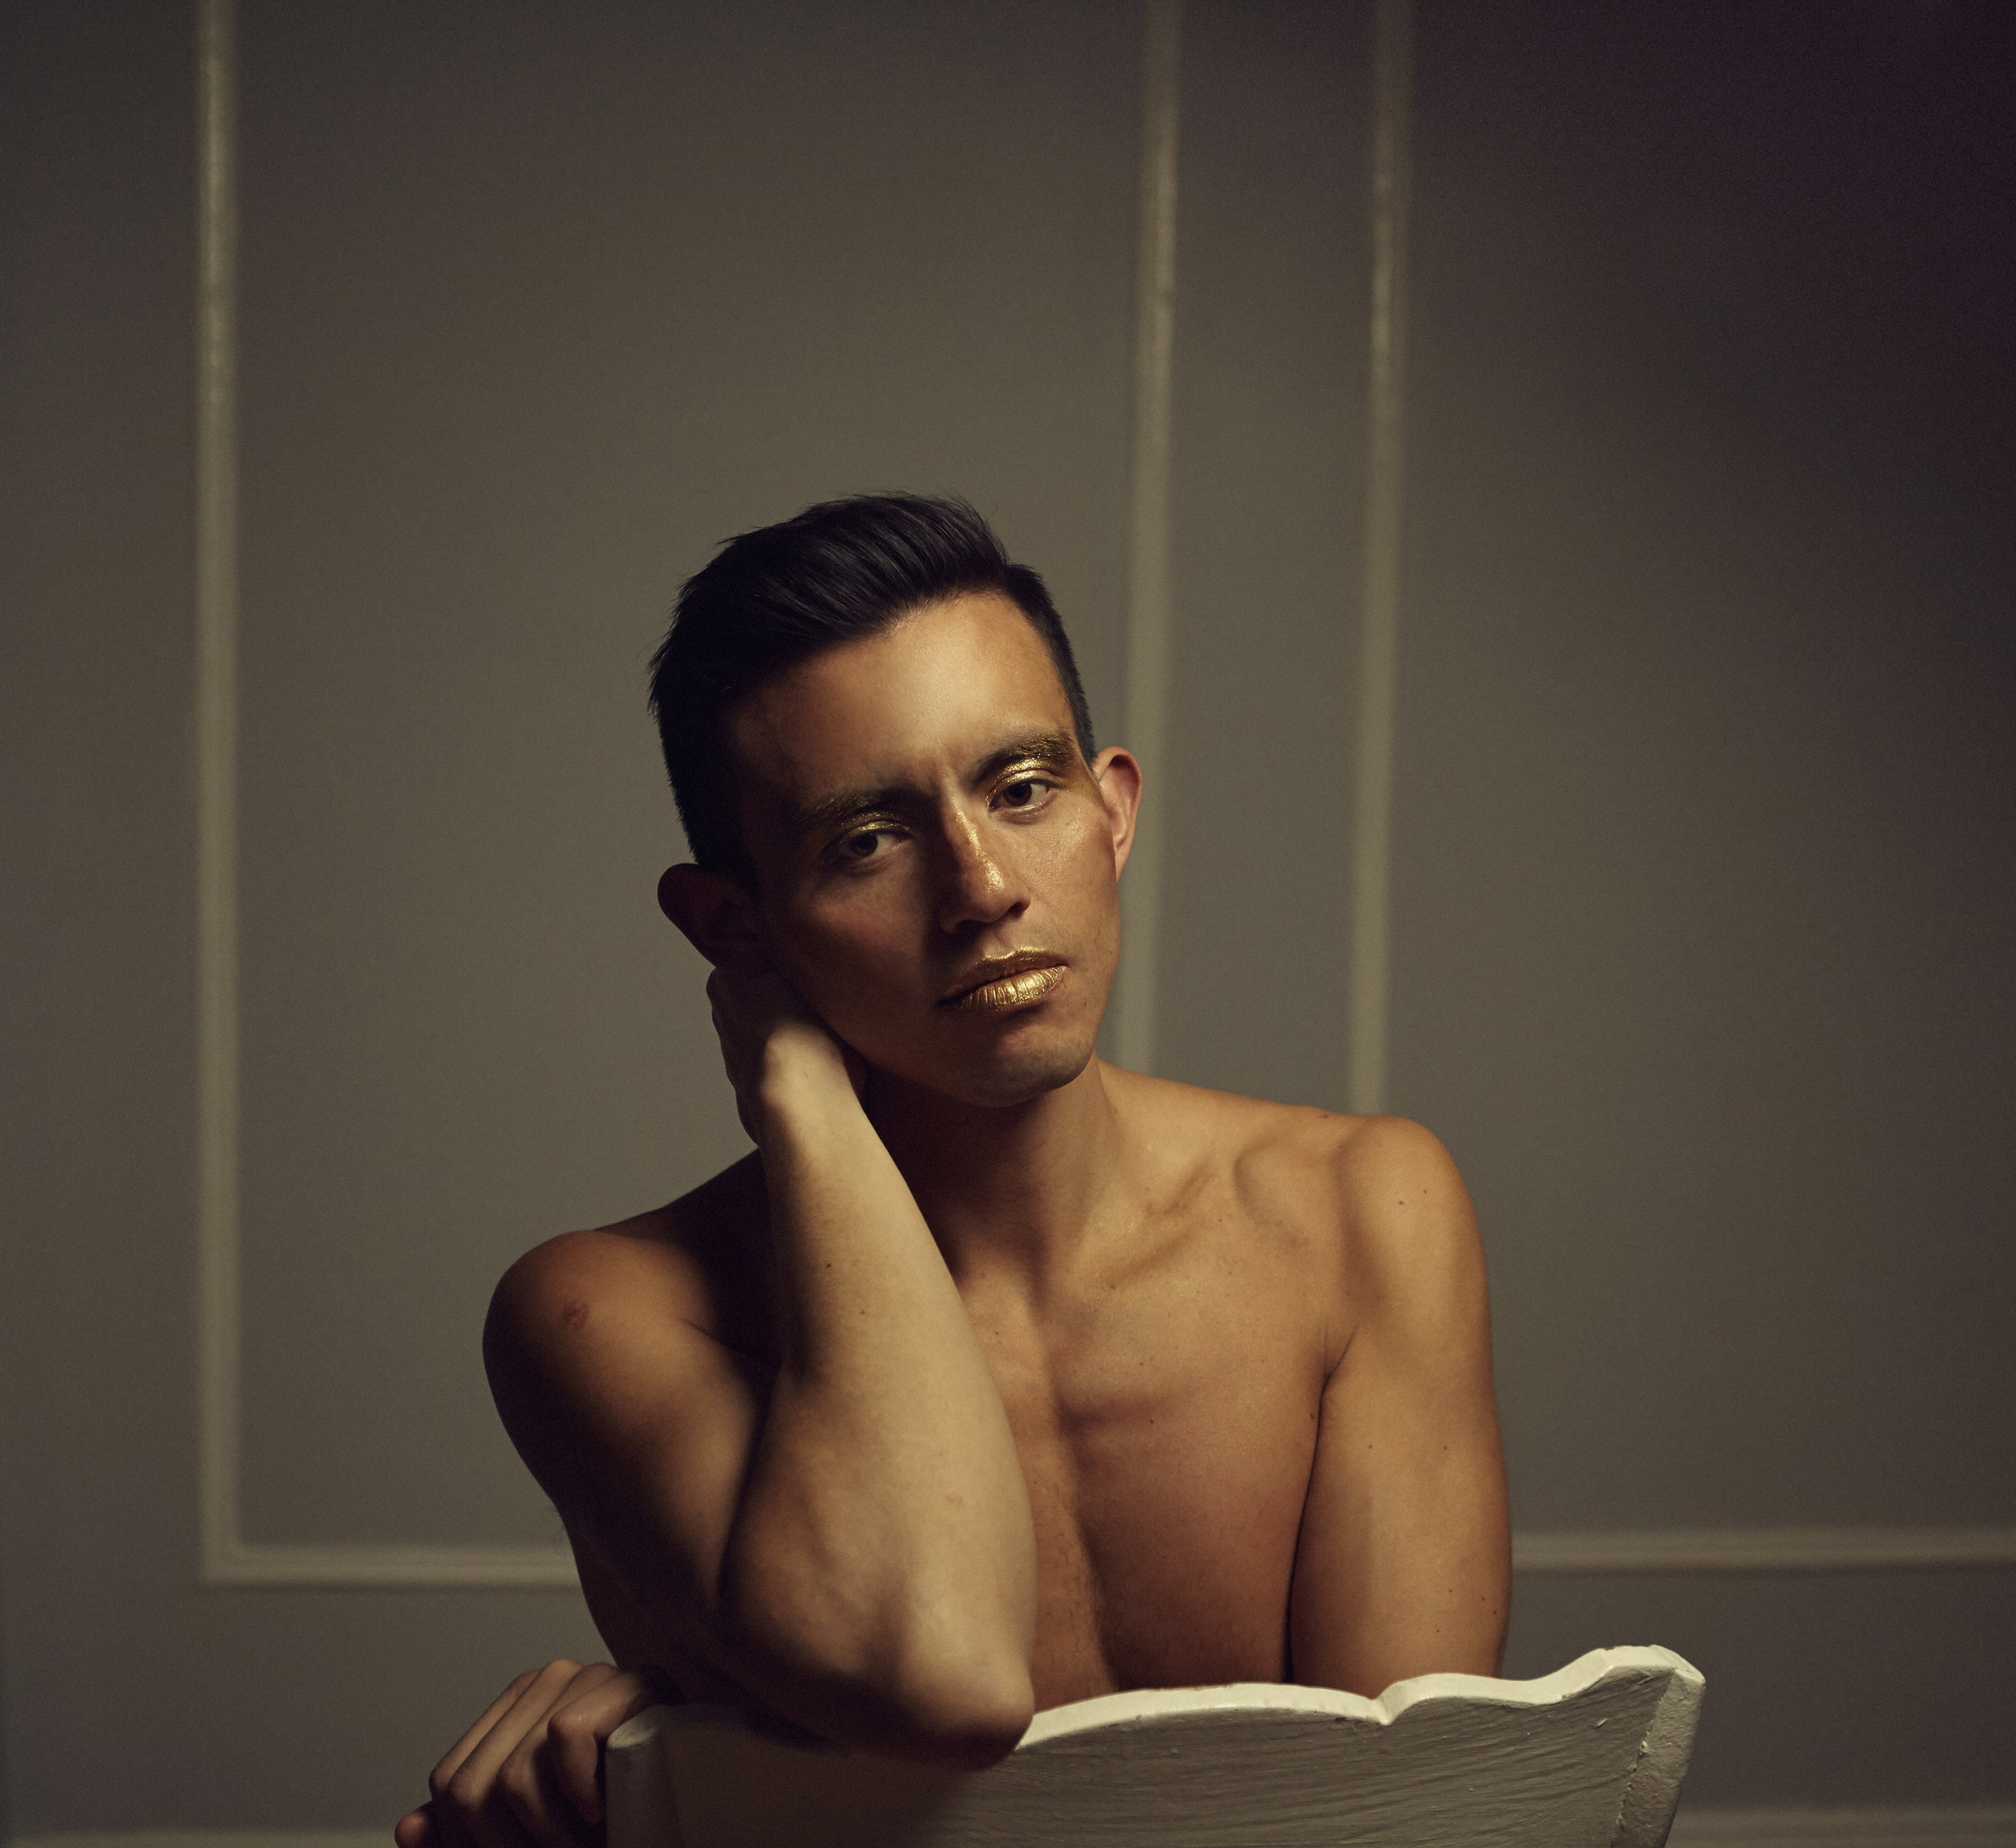 """""""I see my life as a living challenge to societal norms and prejudices, whether I am challenging the way judges see my clients in immigration court, or whether I am walking down the street with makeup on my face, my main goal is to have people see my humanity and my clients' humanity."""" - — luis mancheno, interview with hiskind magazine, april 4, 2017"""